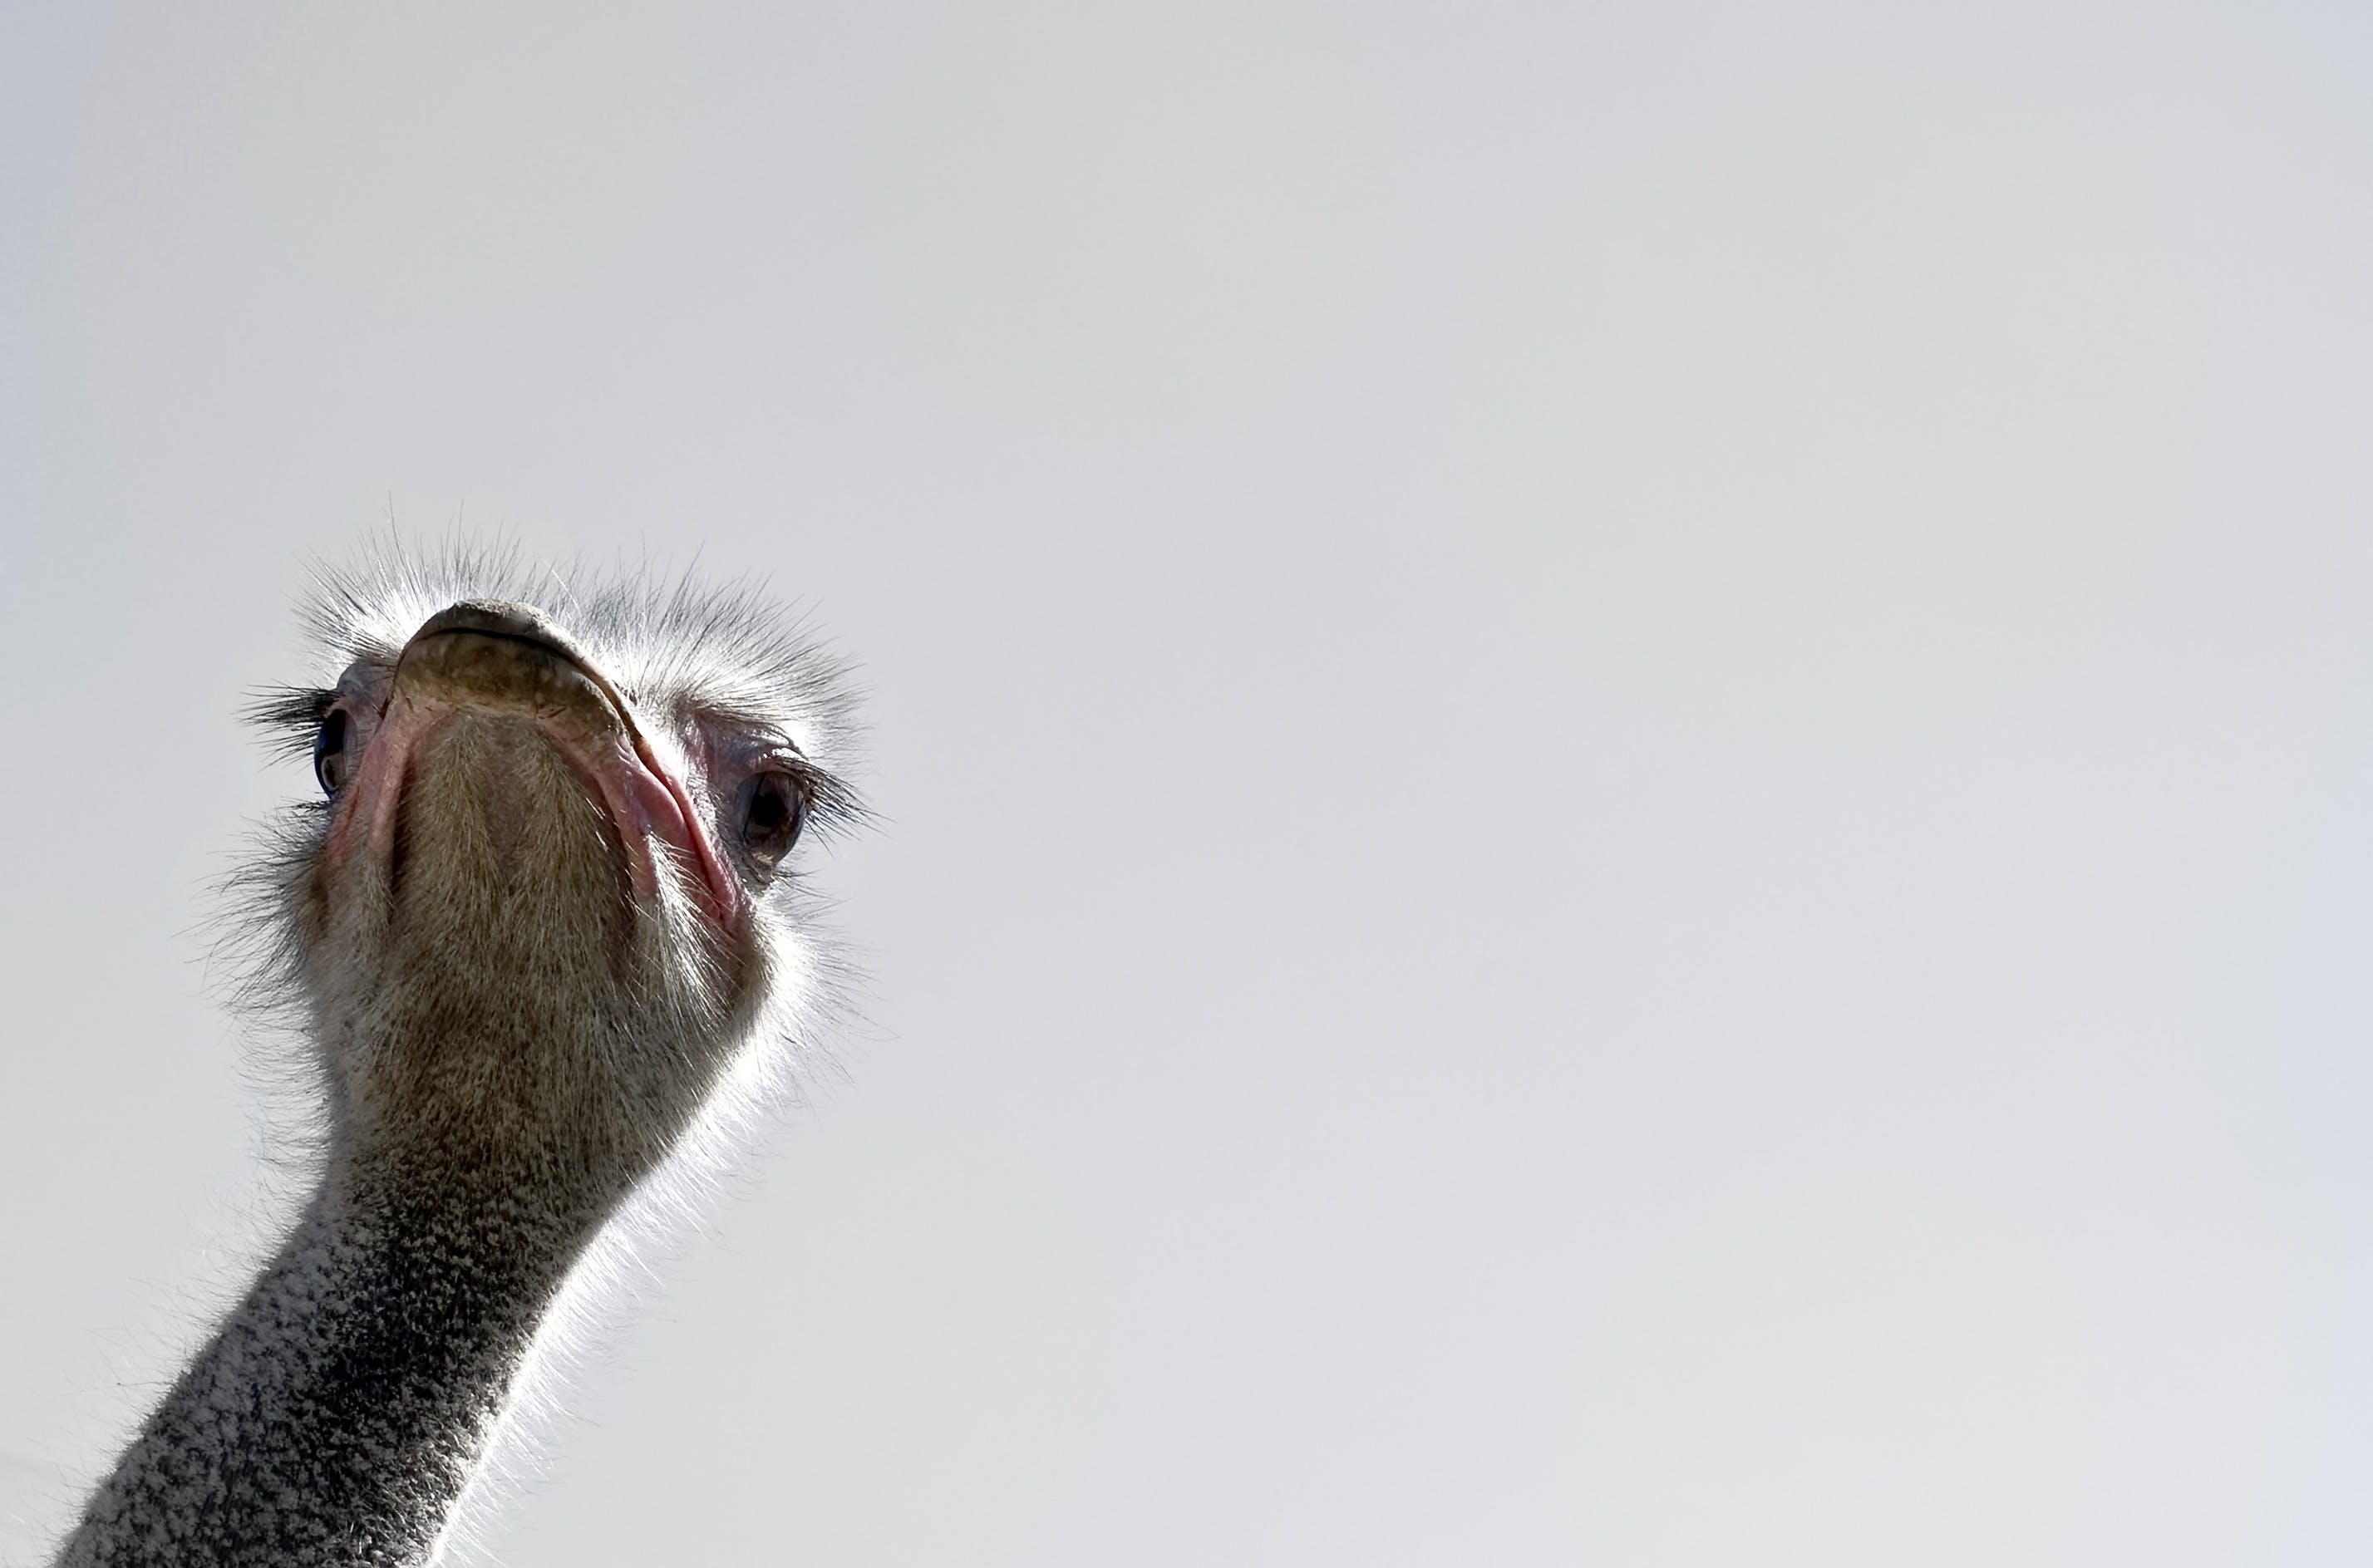 Gray Ostrich Head in Close-up Photo